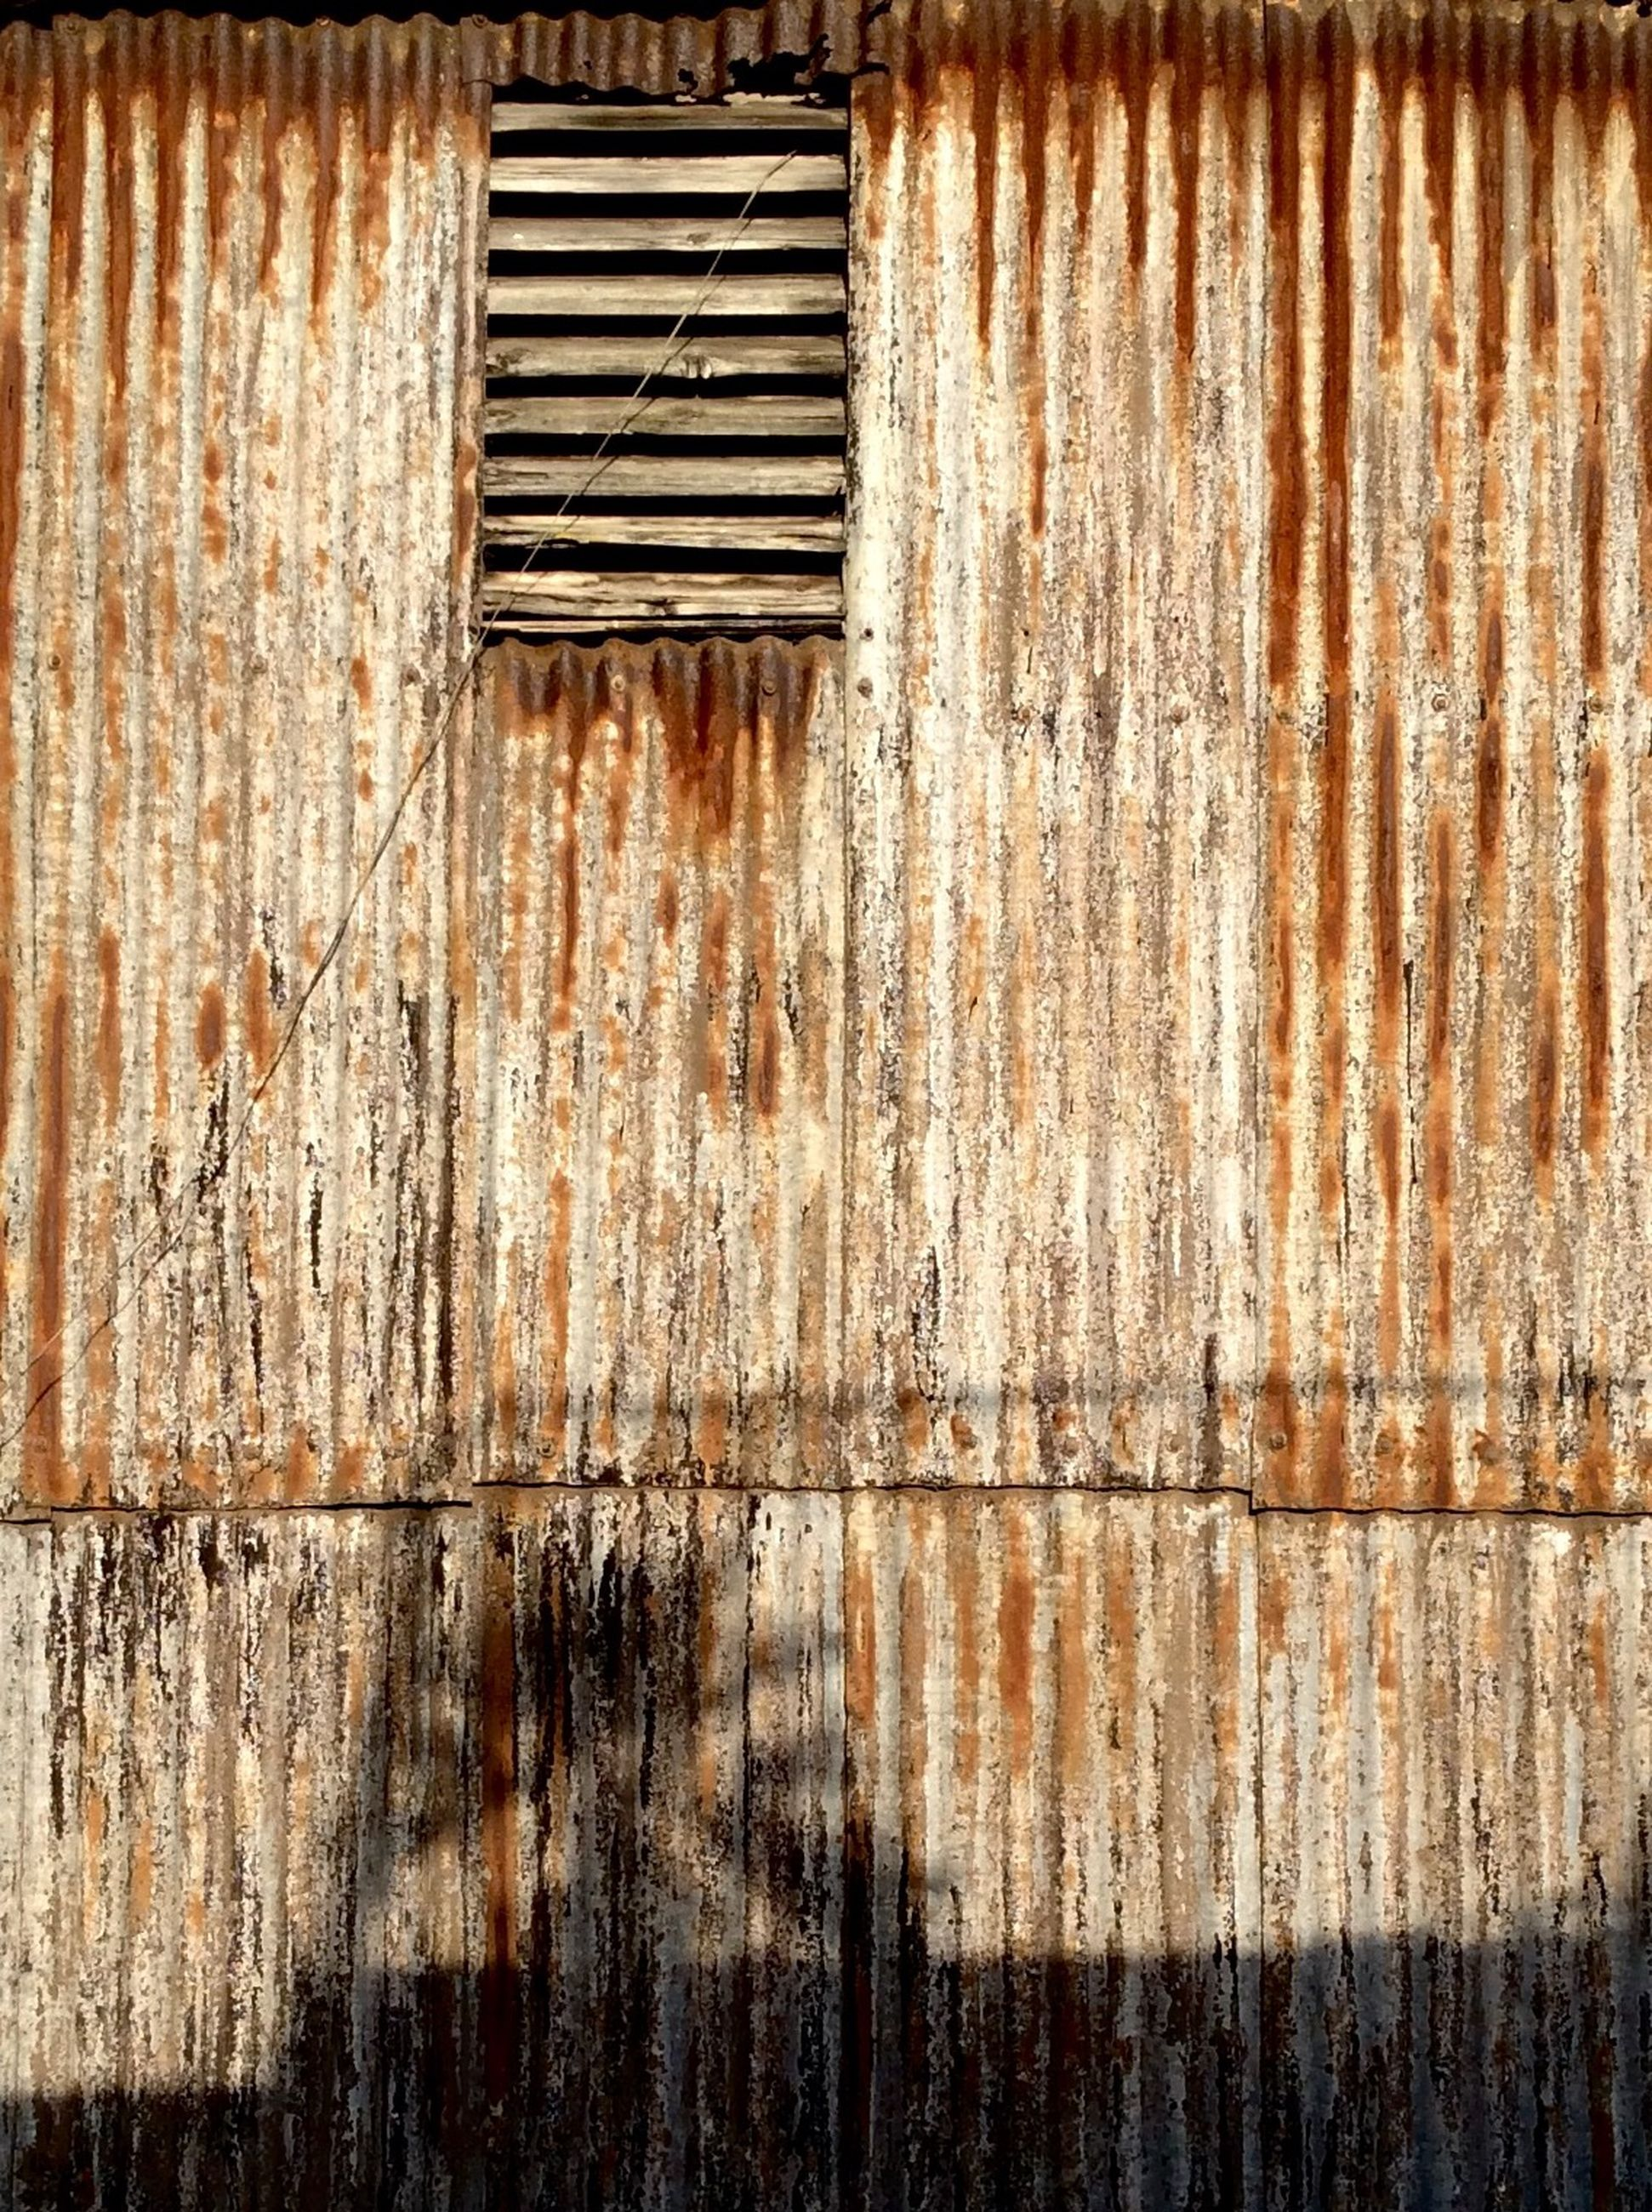 wood - material, no people, day, textured, outdoors, close-up, architecture